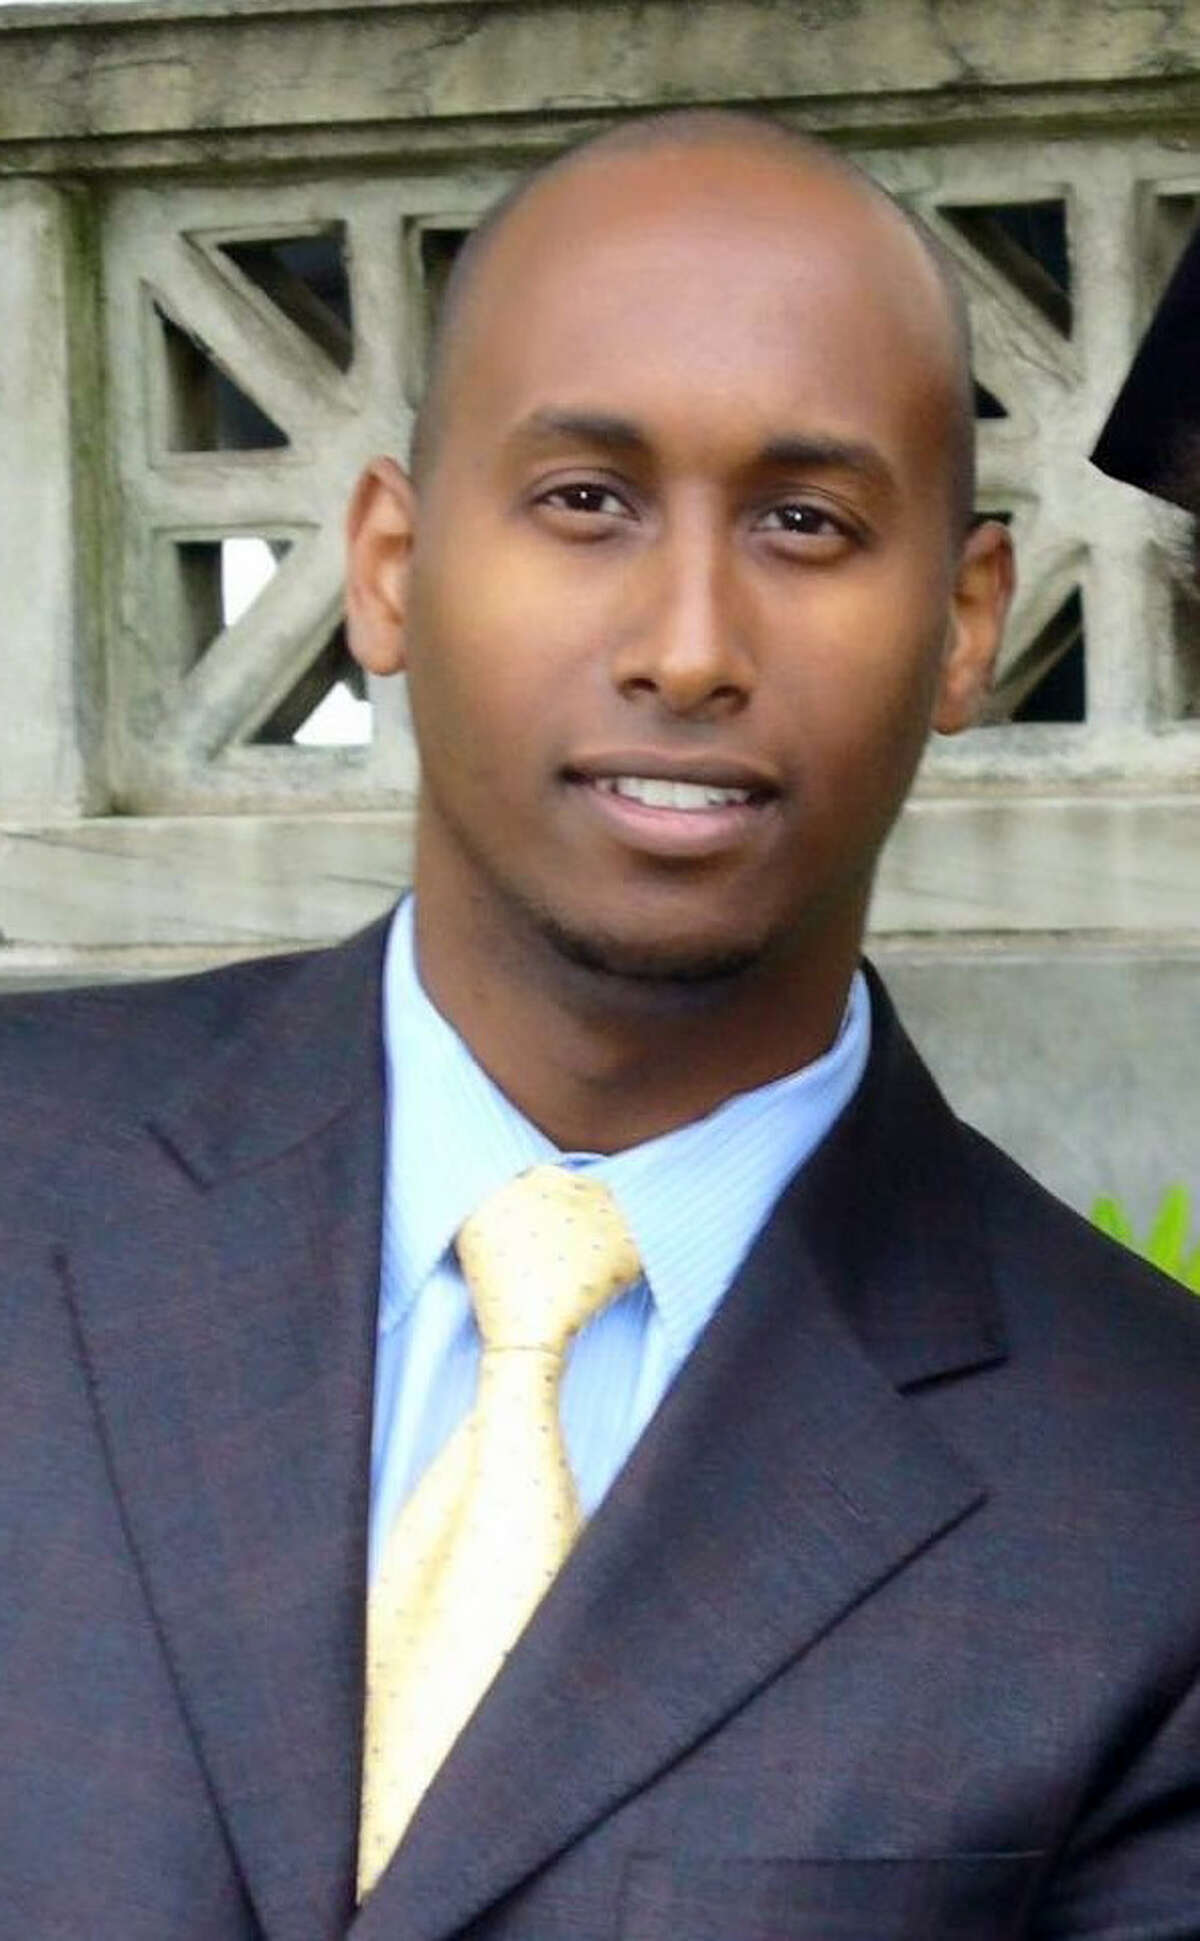 Gugsa Abraham Dabela died on April 5, 2014 after a car accident in Redding Conn. He was found shot though the back of his heaad. The Dabela family and now the NAACP have questioned his death being ruled a suicide.